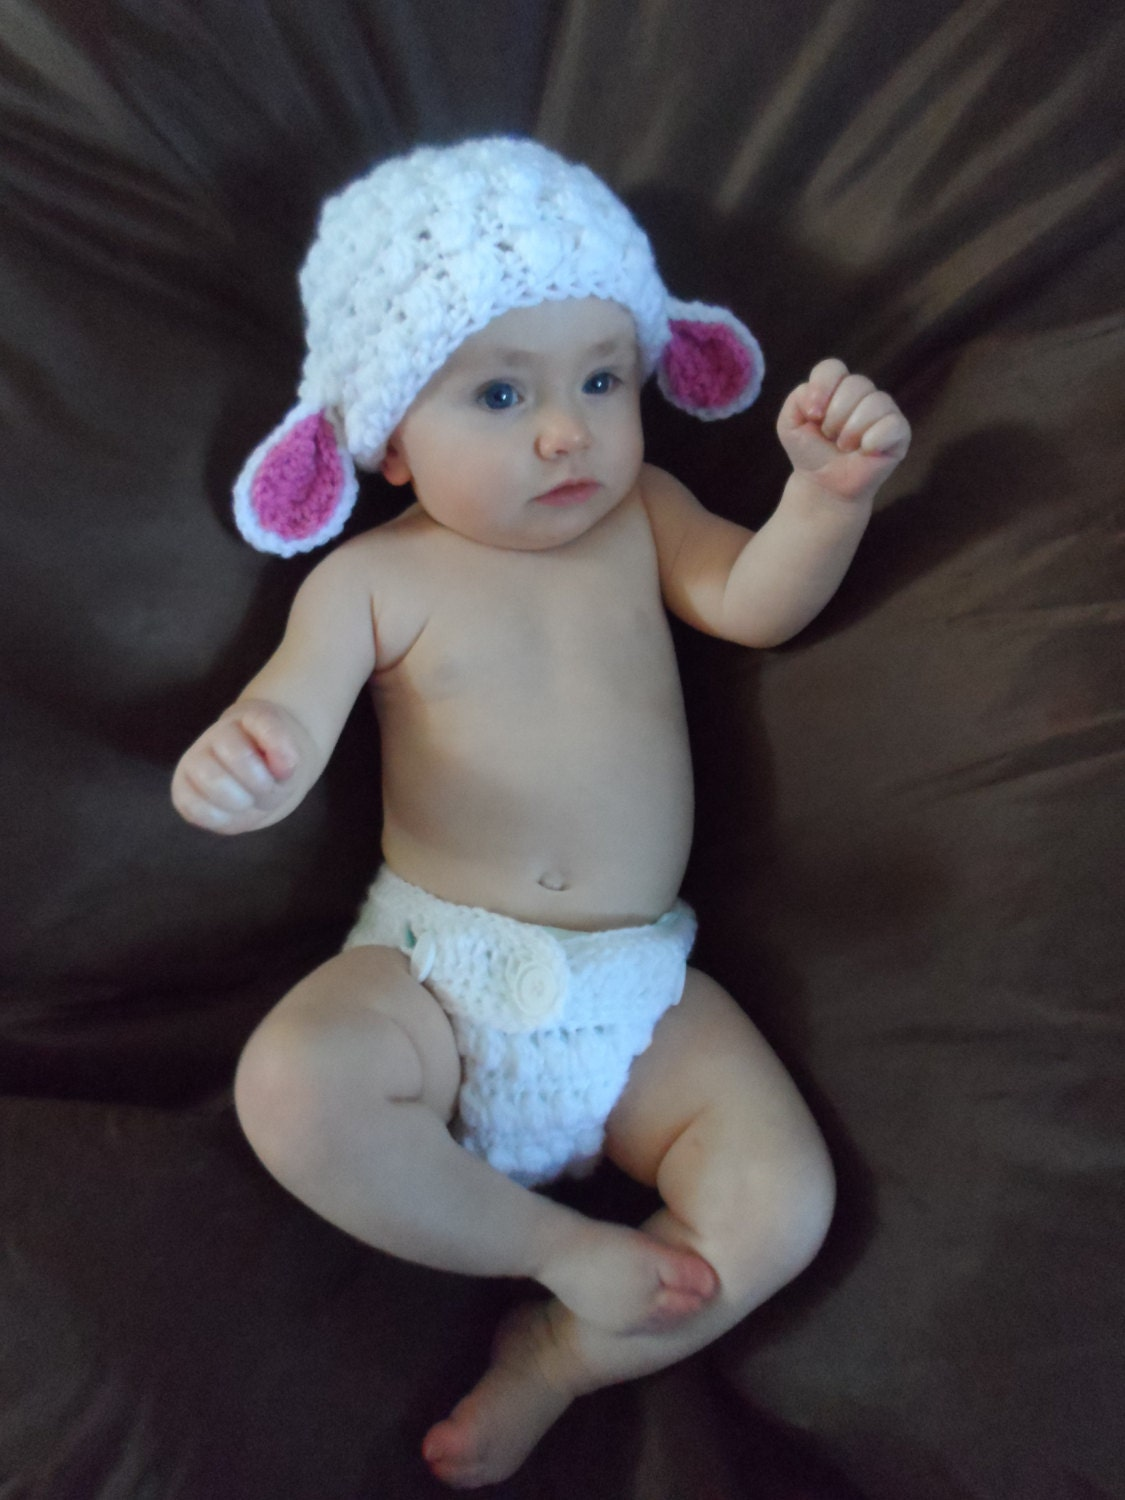 6 Month Old Baby Gifts Uk : Handmade crocheted fluffy easter lamb baby costume